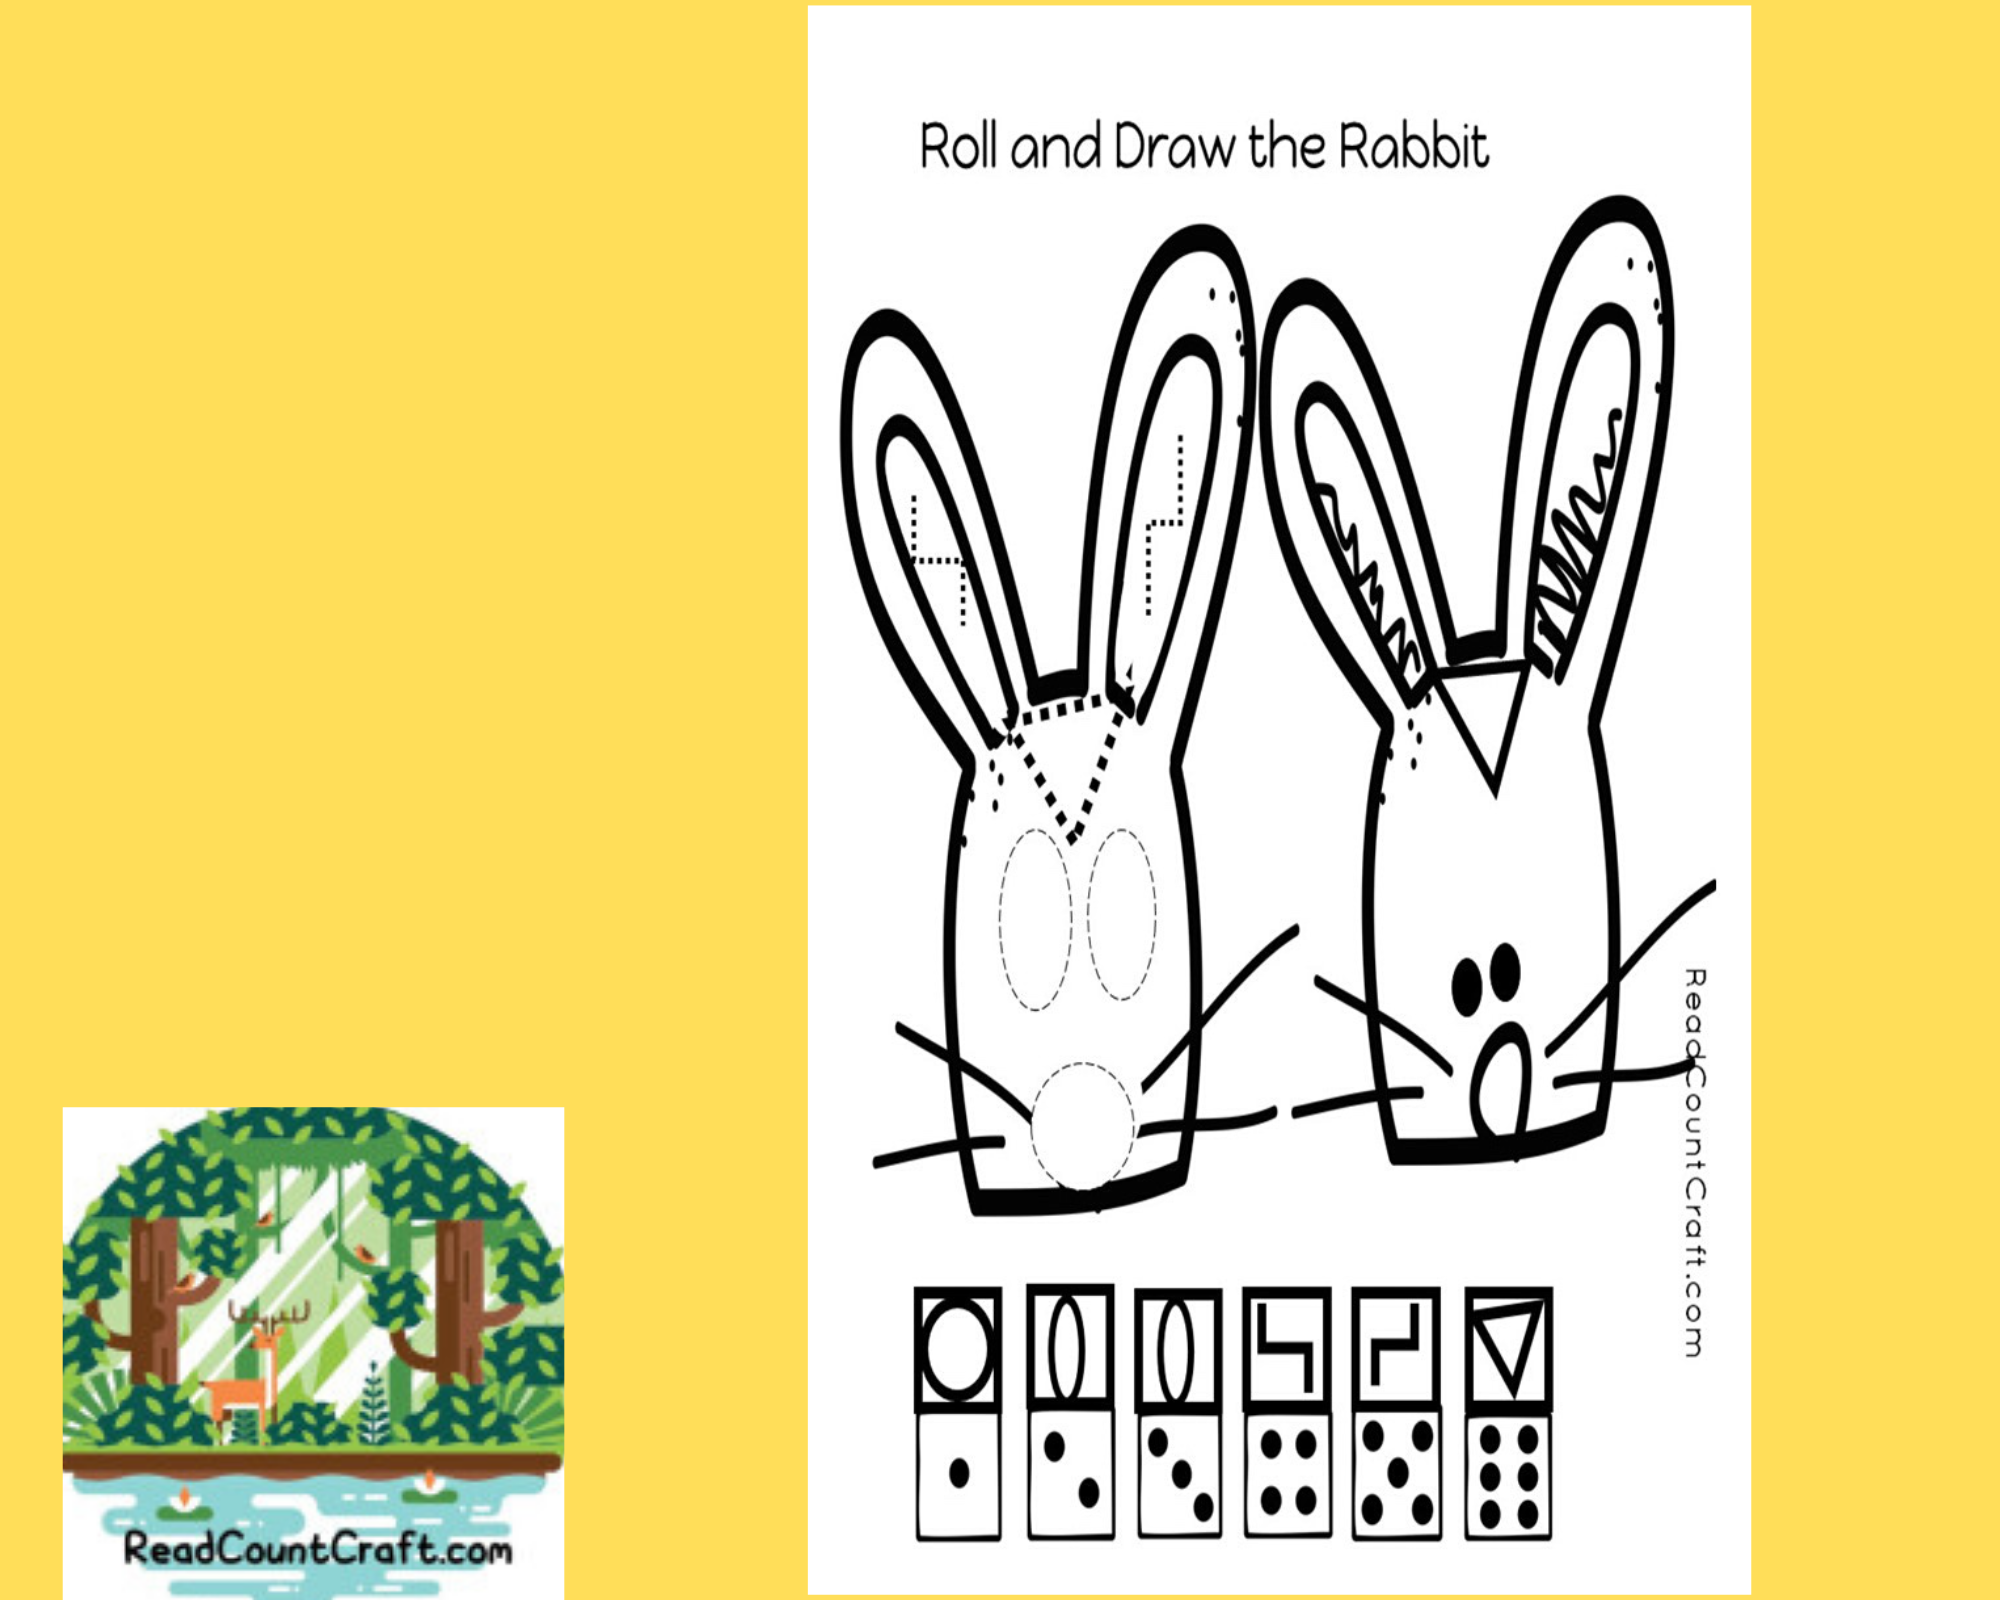 preschool math game roll and draw a rabbit